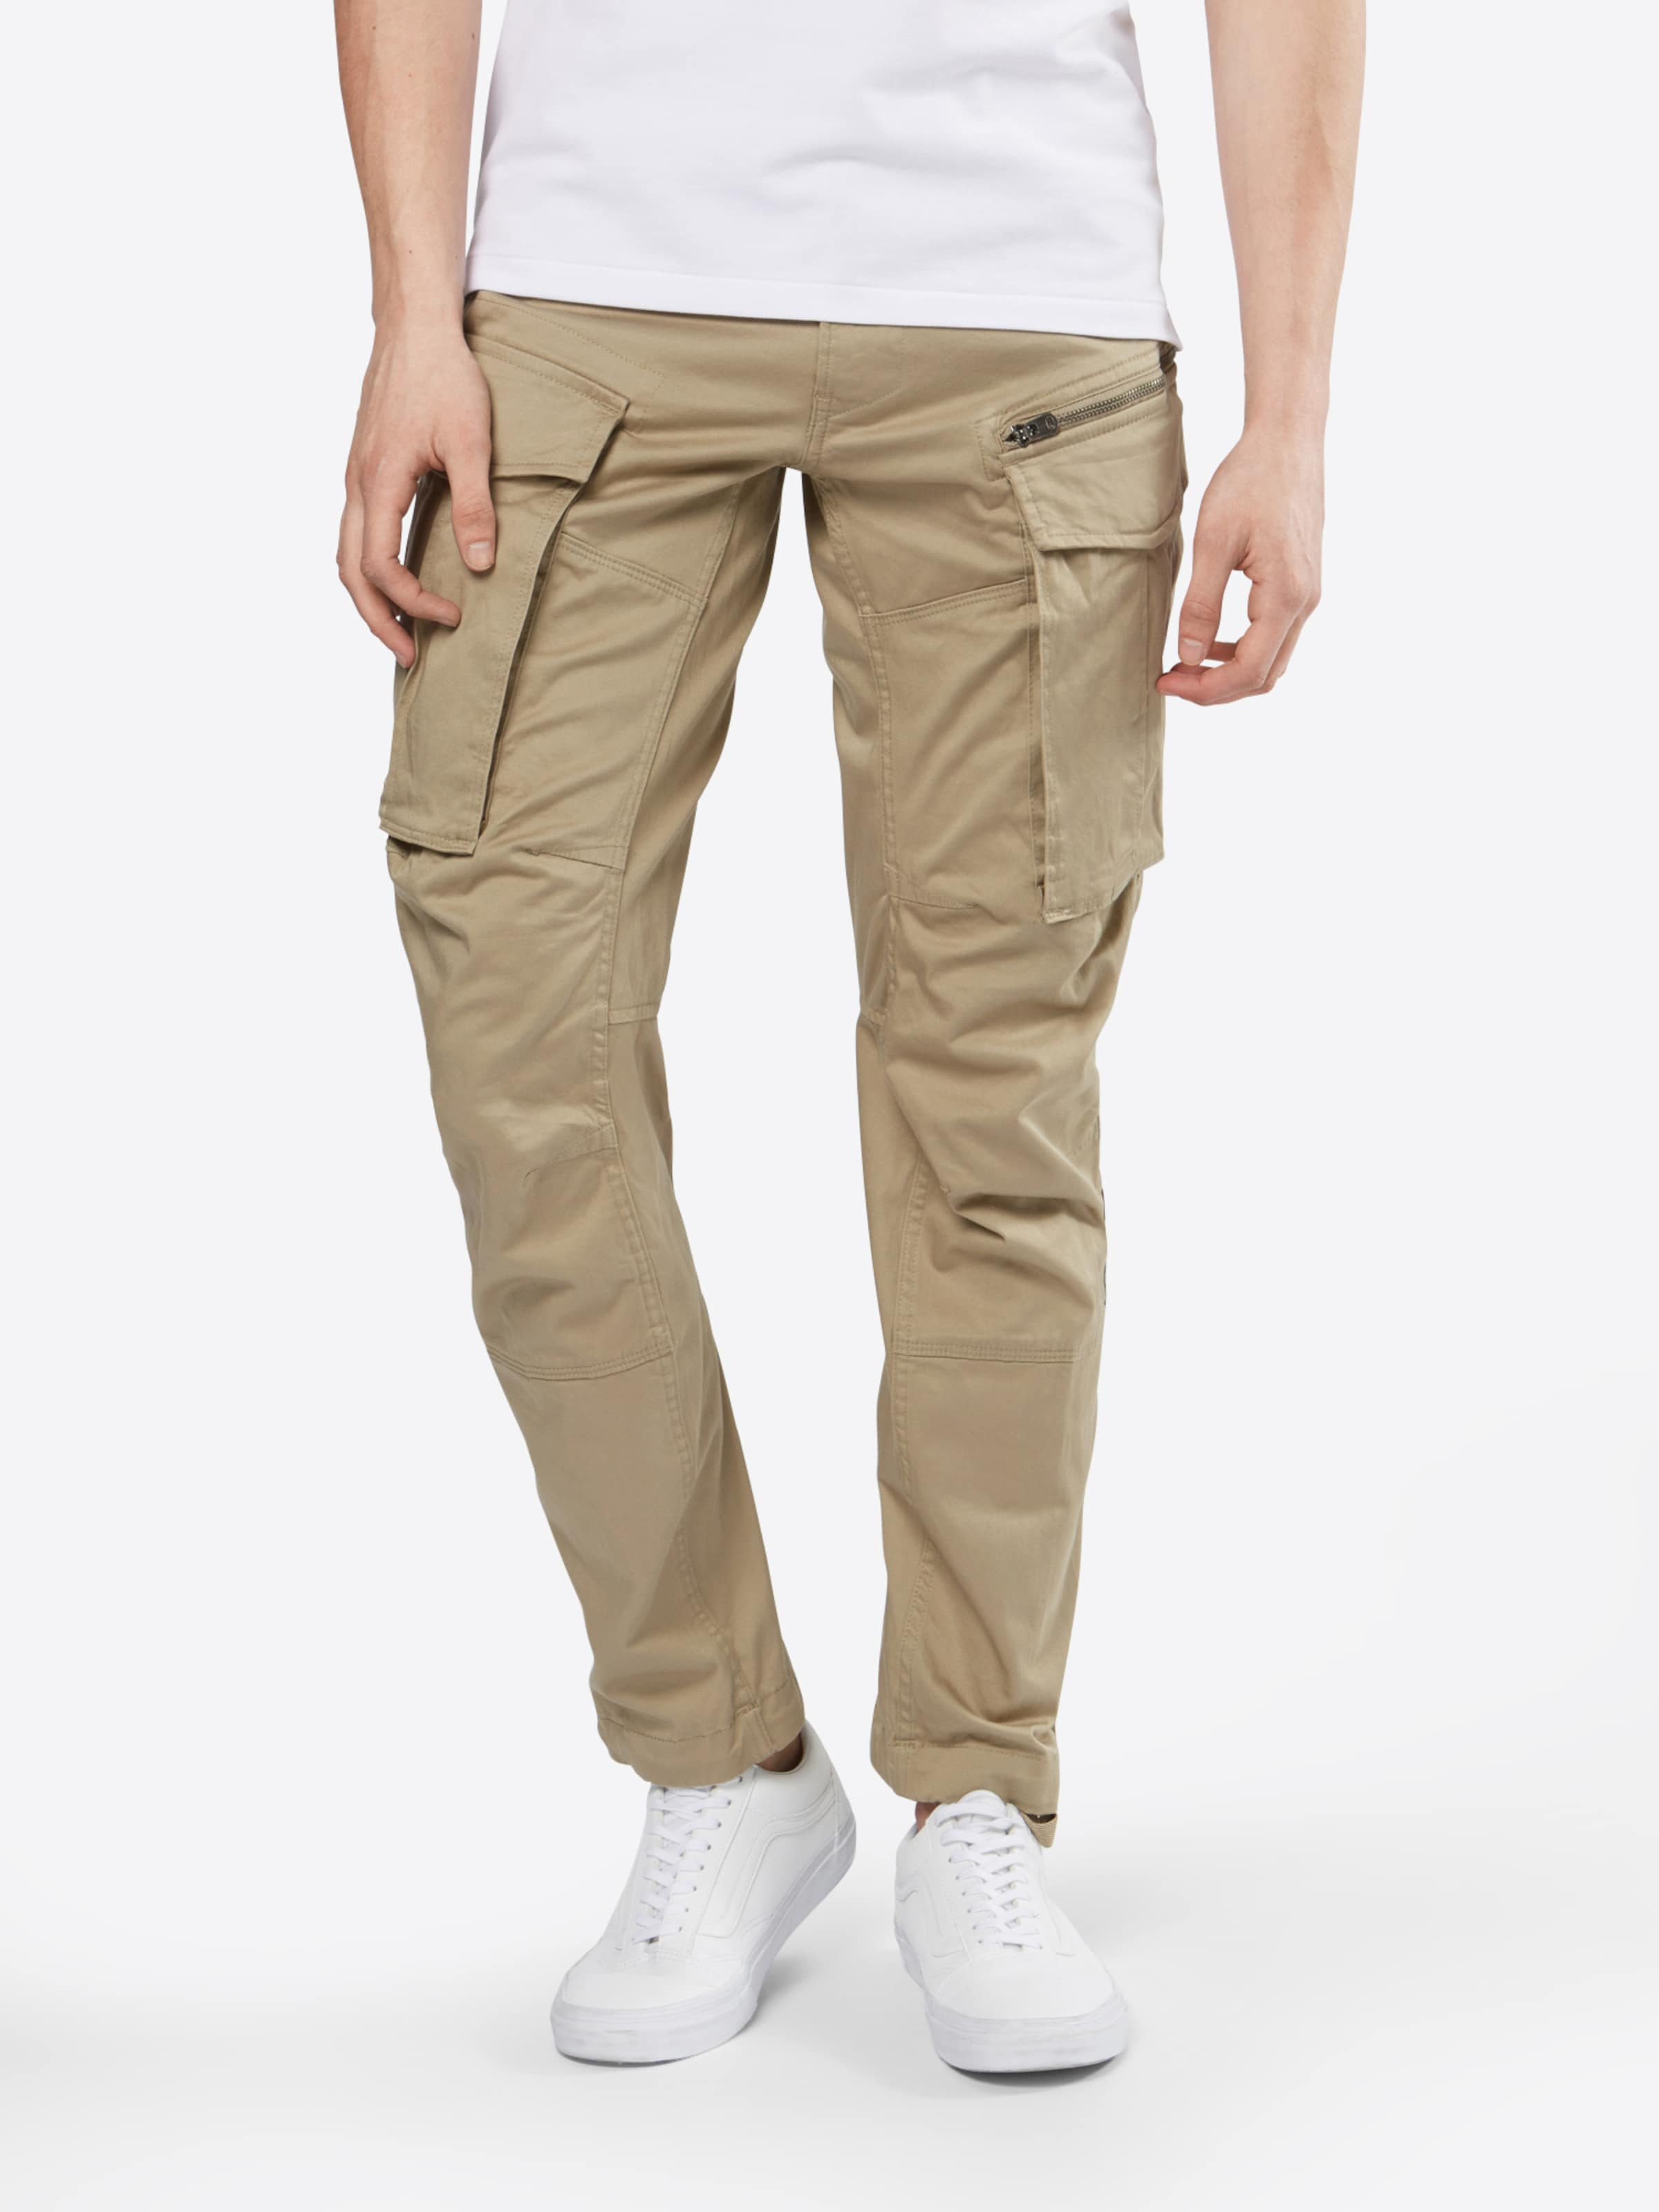 Raw 3d Pantalon En Cargo star 'rovic G Tapered' Beige srtQdhCx